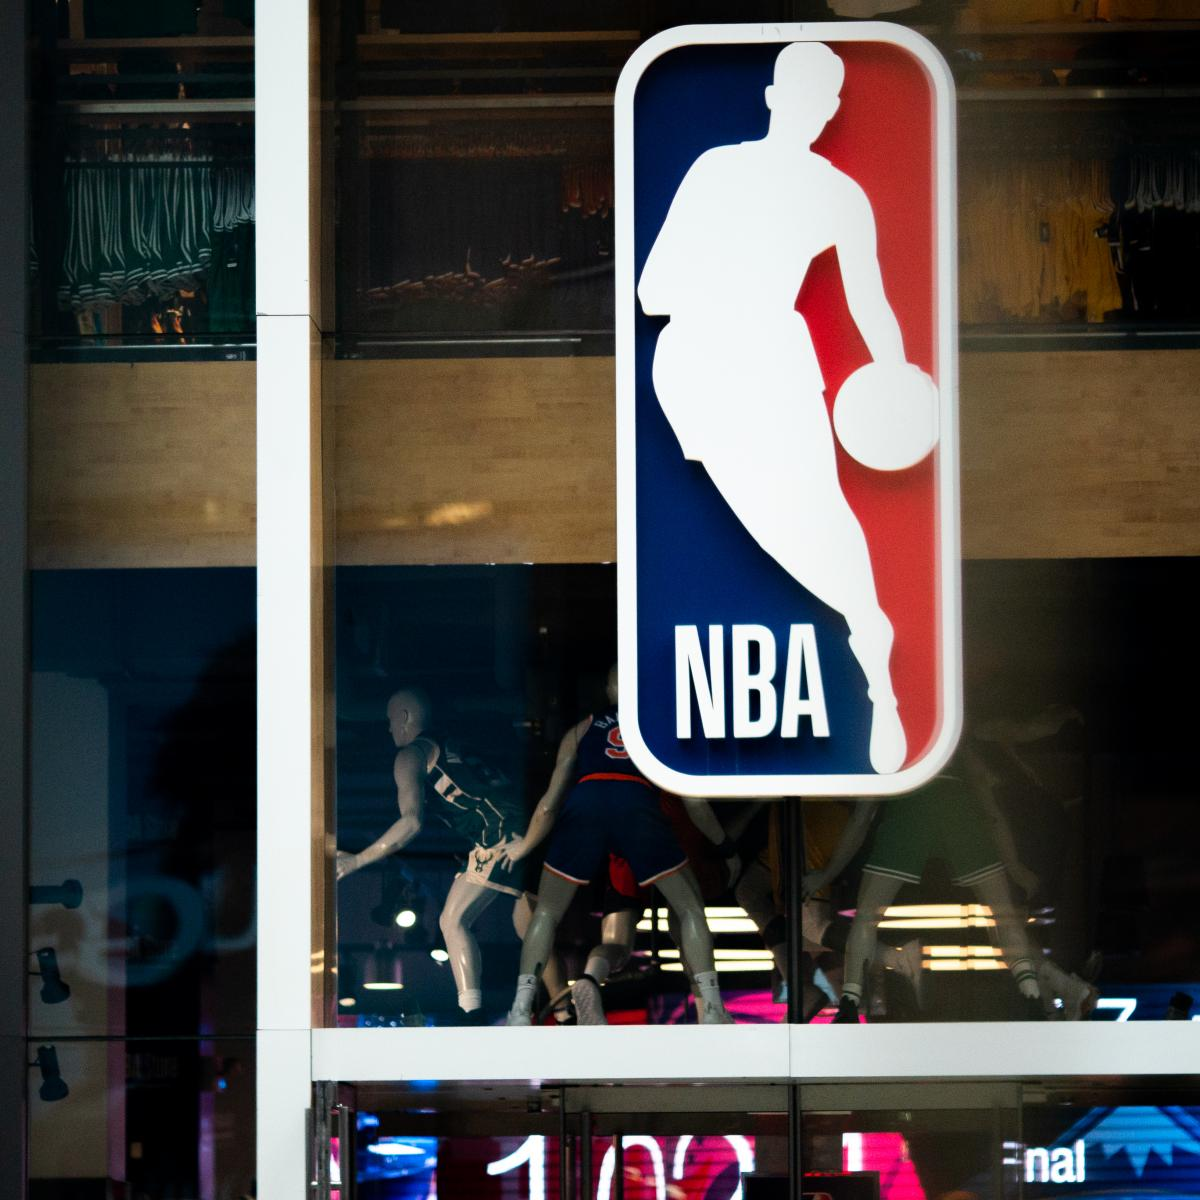 Agent on NBA Players Bringing Weed to Campus: 'You're Asking About Fight Club' - Bleacher Report